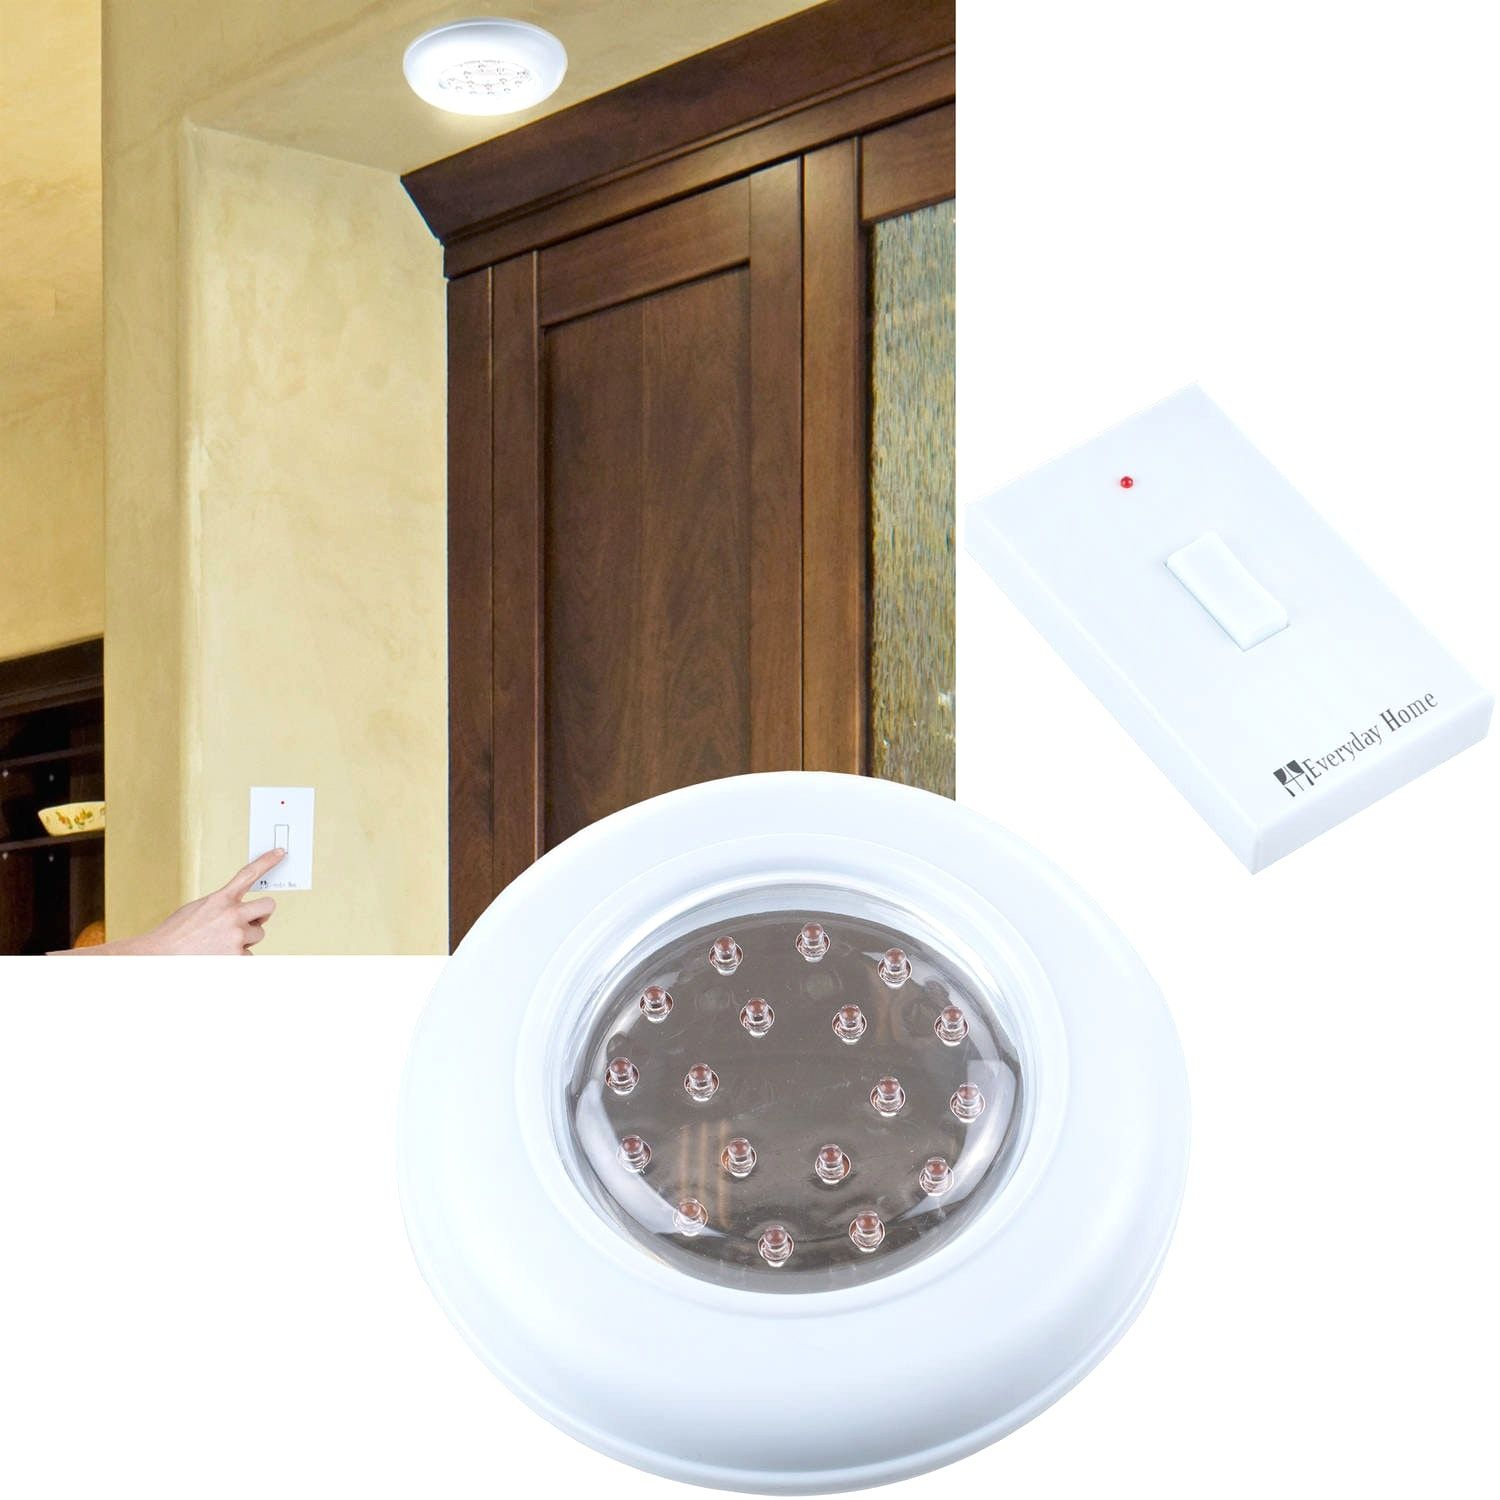 Remote controlled ceiling light switch http remote controlled ceiling light switch while outdoor lighting can make your house look up and gorgeous course in additio workwithnaturefo